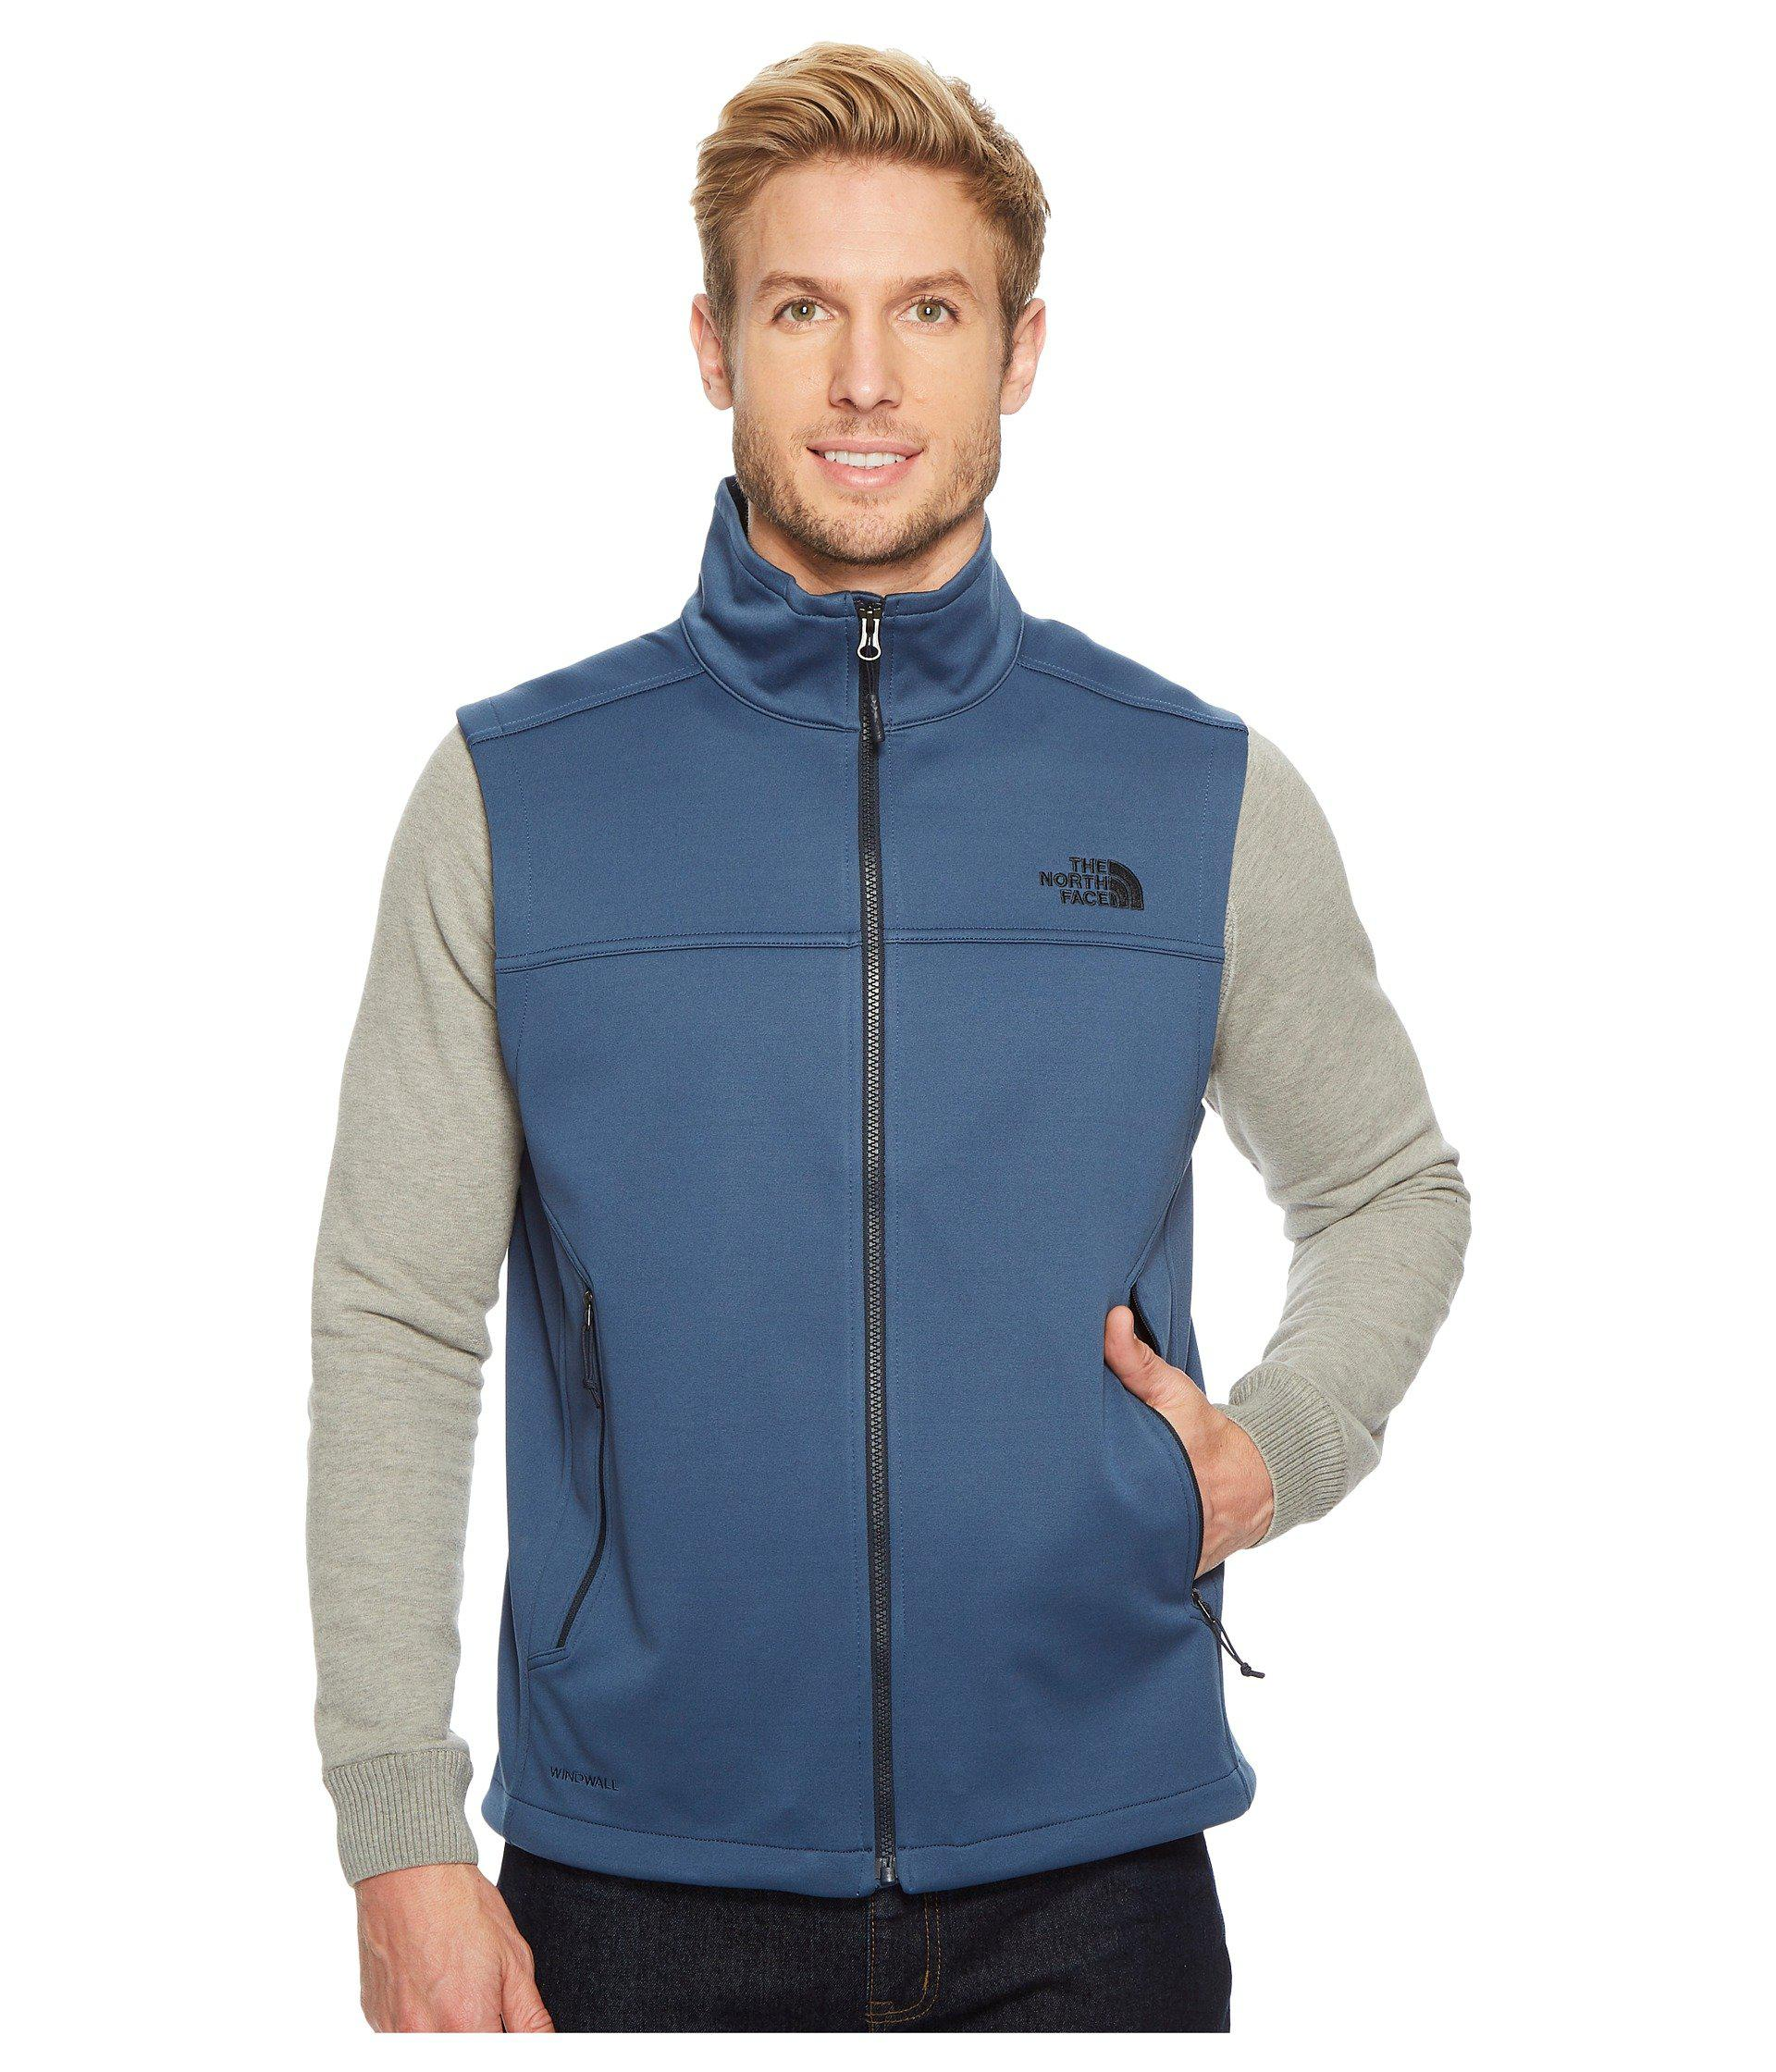 bdb5ed300f9 ... low price lyst the north face apex canyonwall vest tnf dark grey  heather fdd19 6fb6c